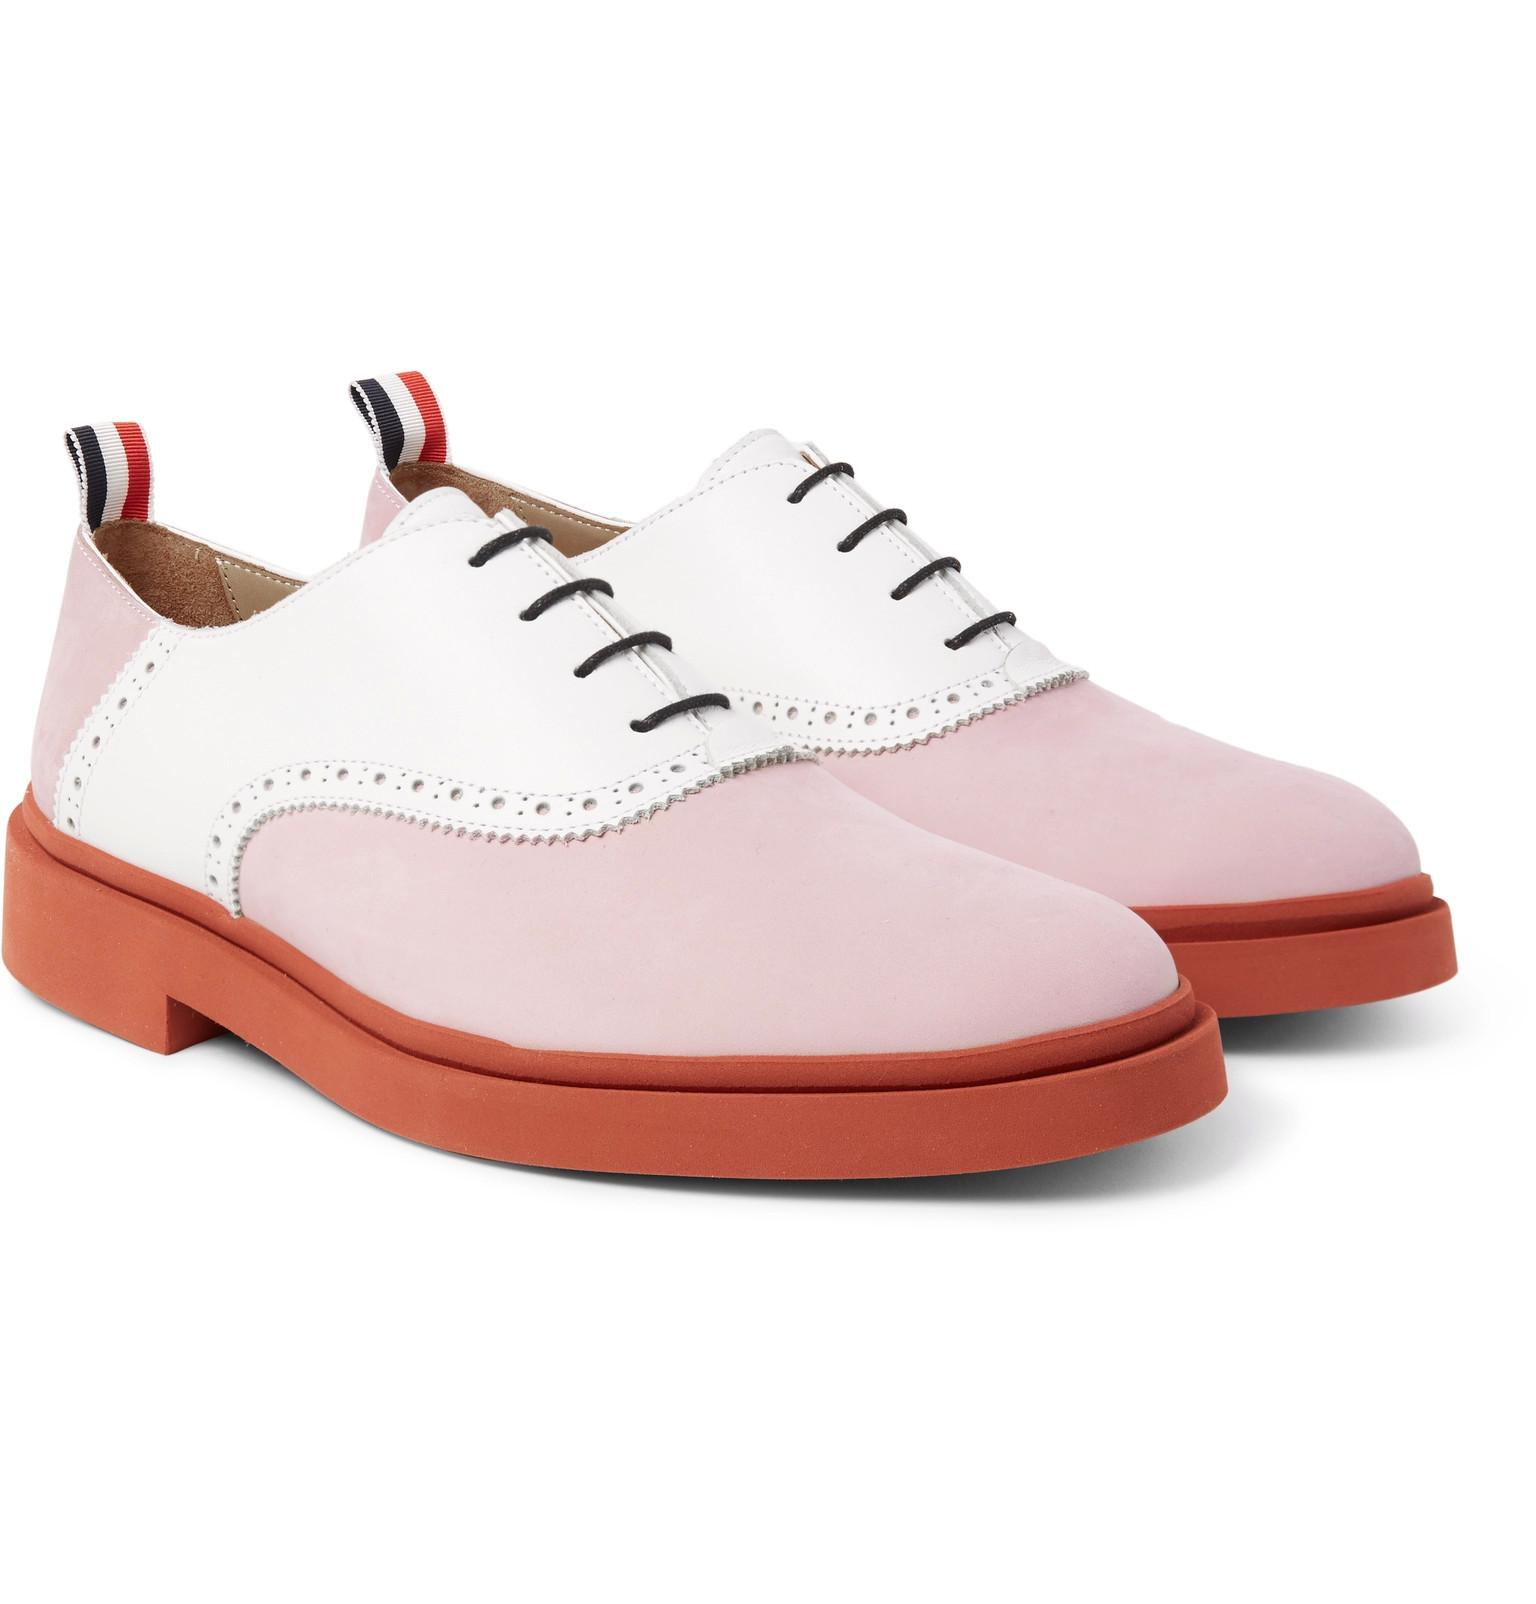 Thom Browne Two-tone Nubuck And Leather Oxford Shoes In Pink For Men | Lyst